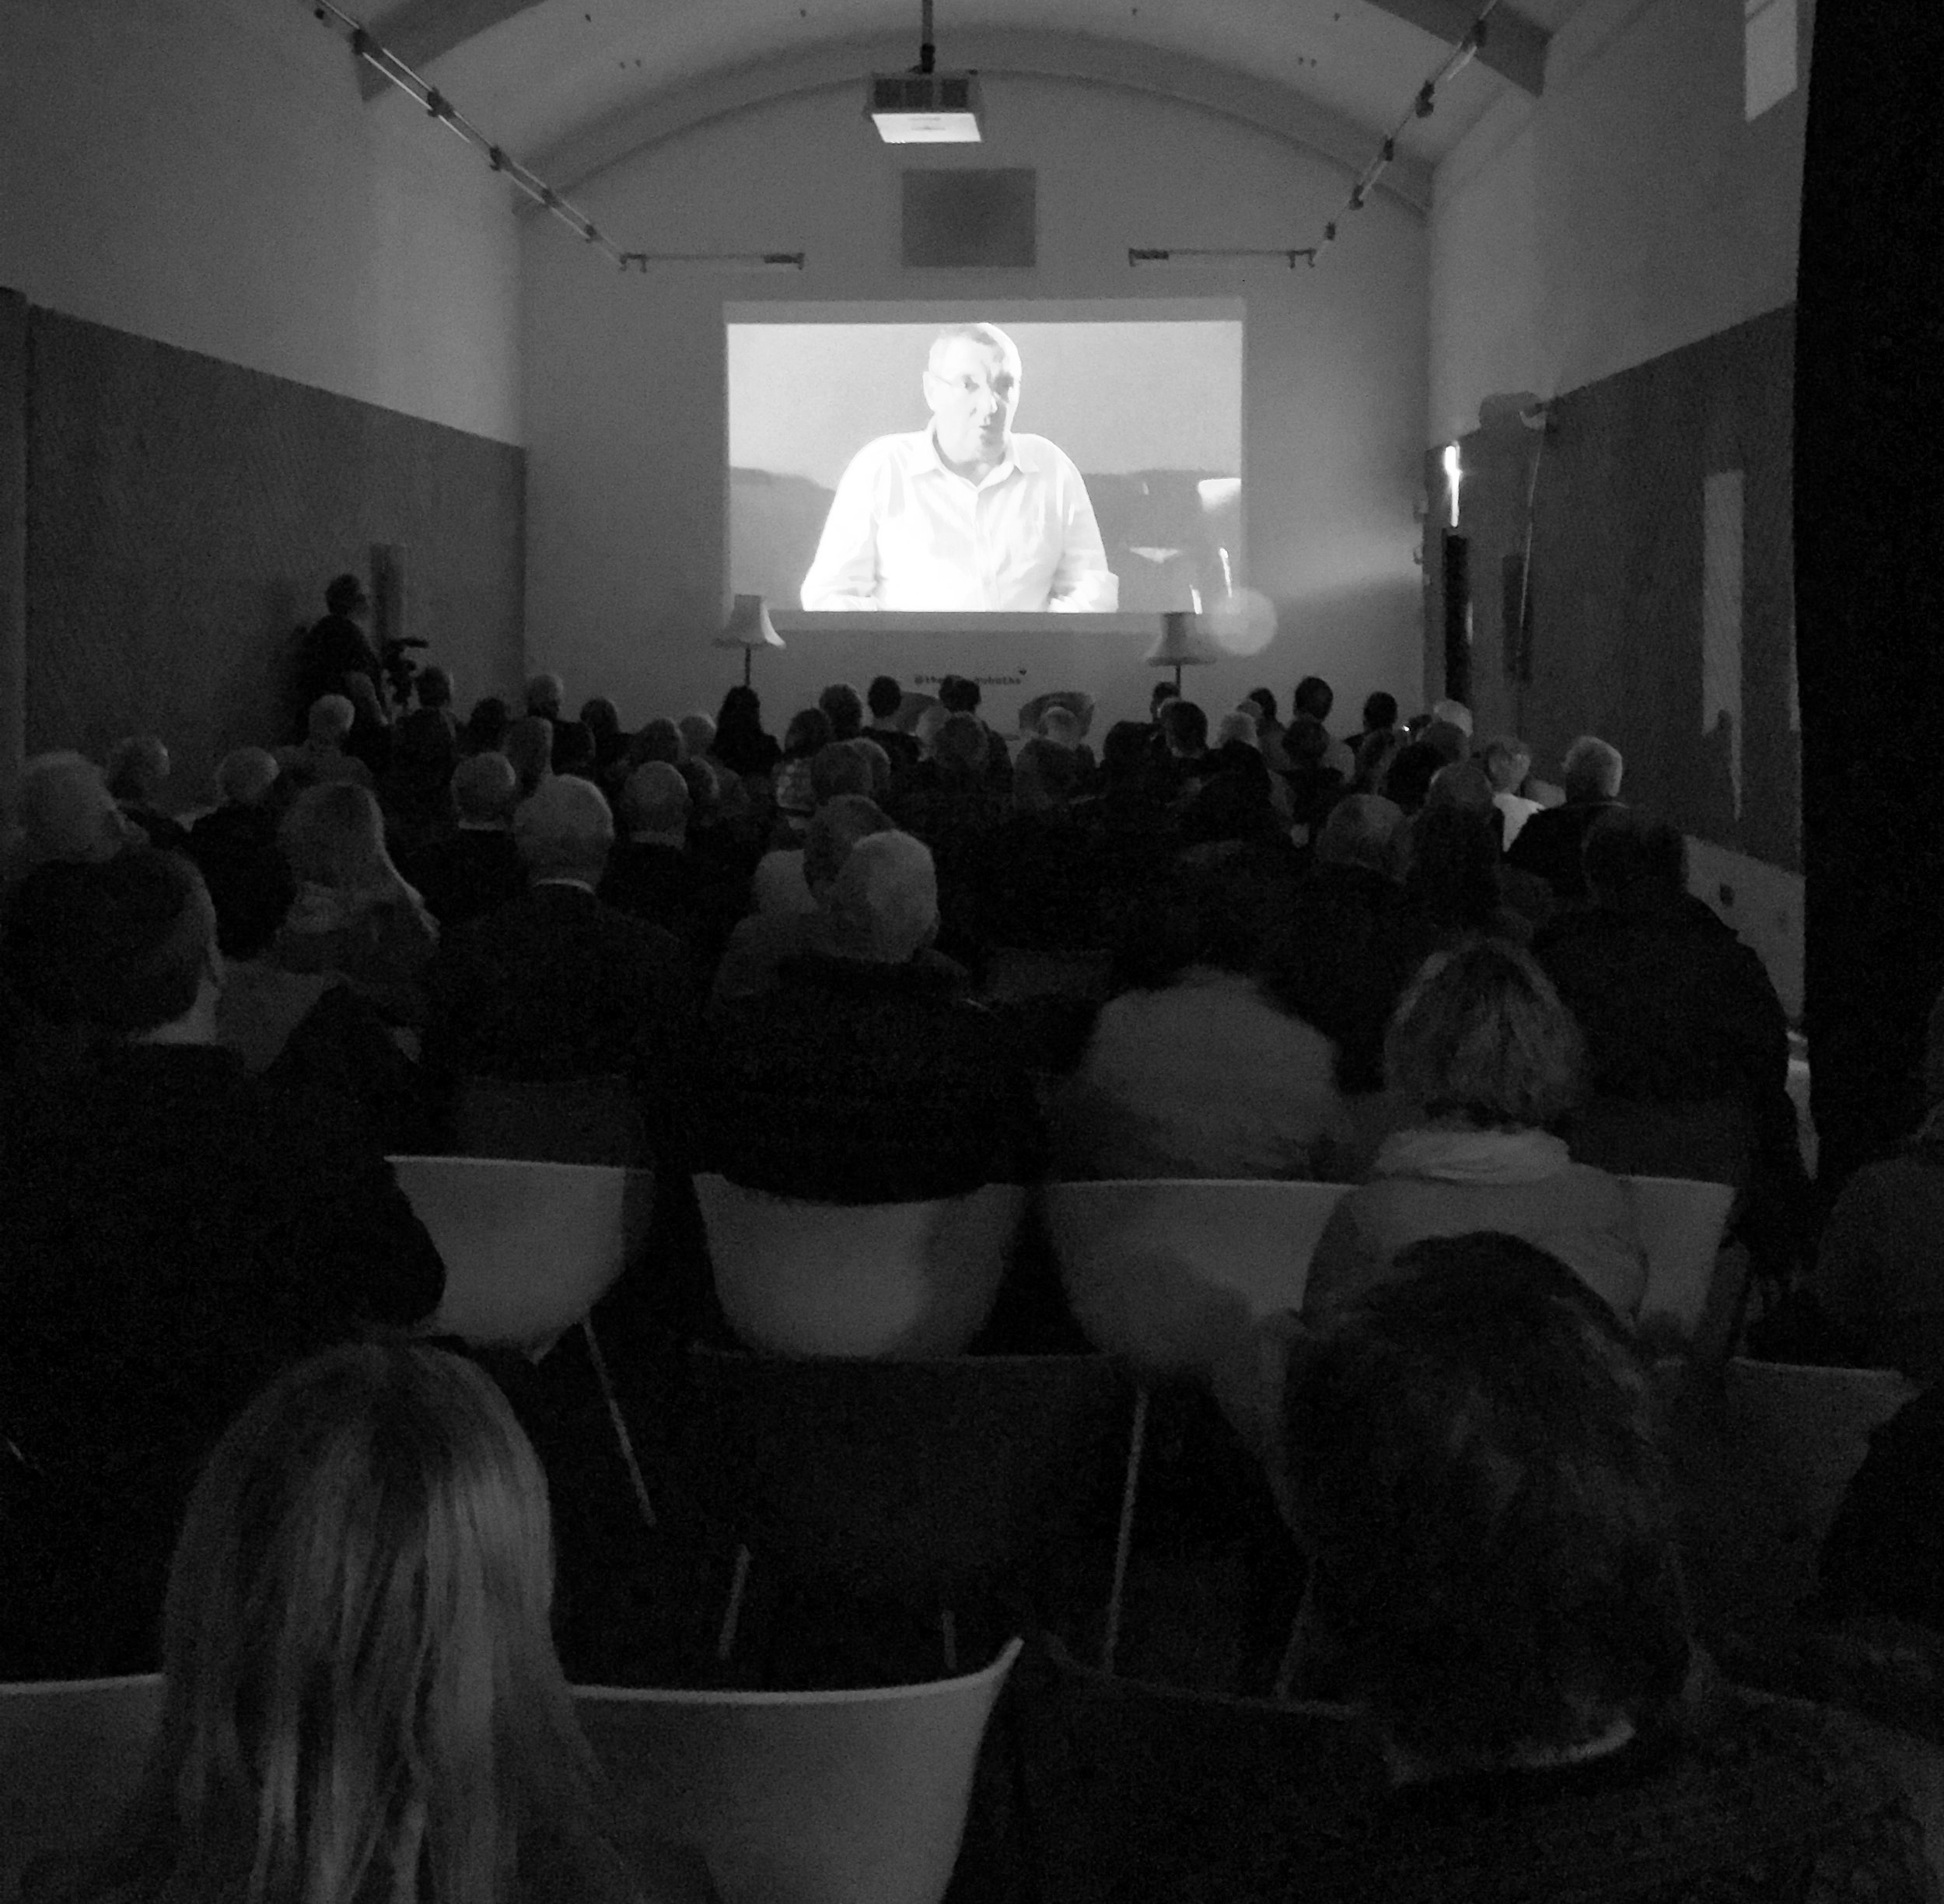 Audience at Boat Builders - Stories from the archive